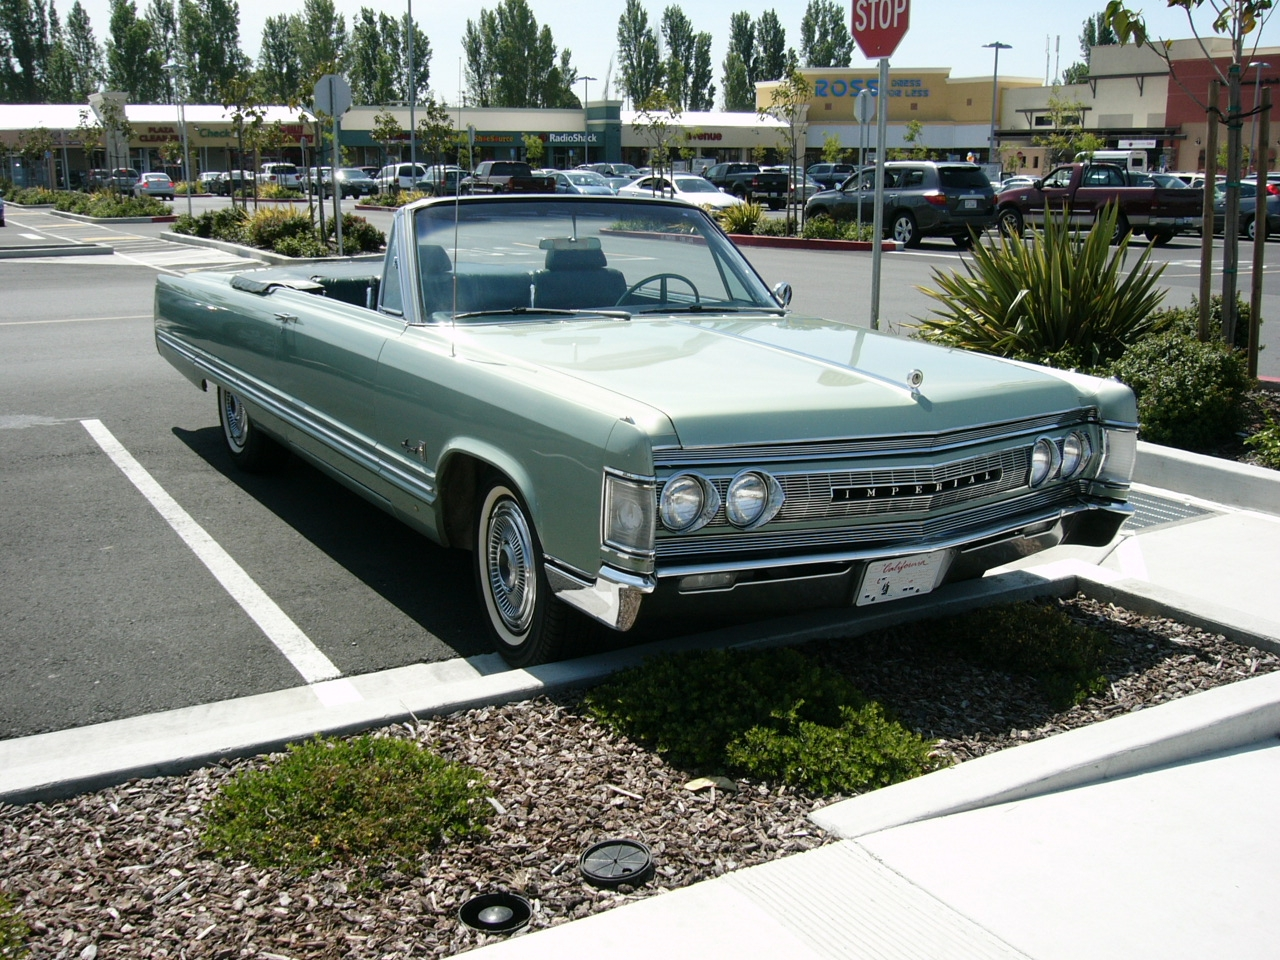 1967 Imperial convertible by RoadTripDog